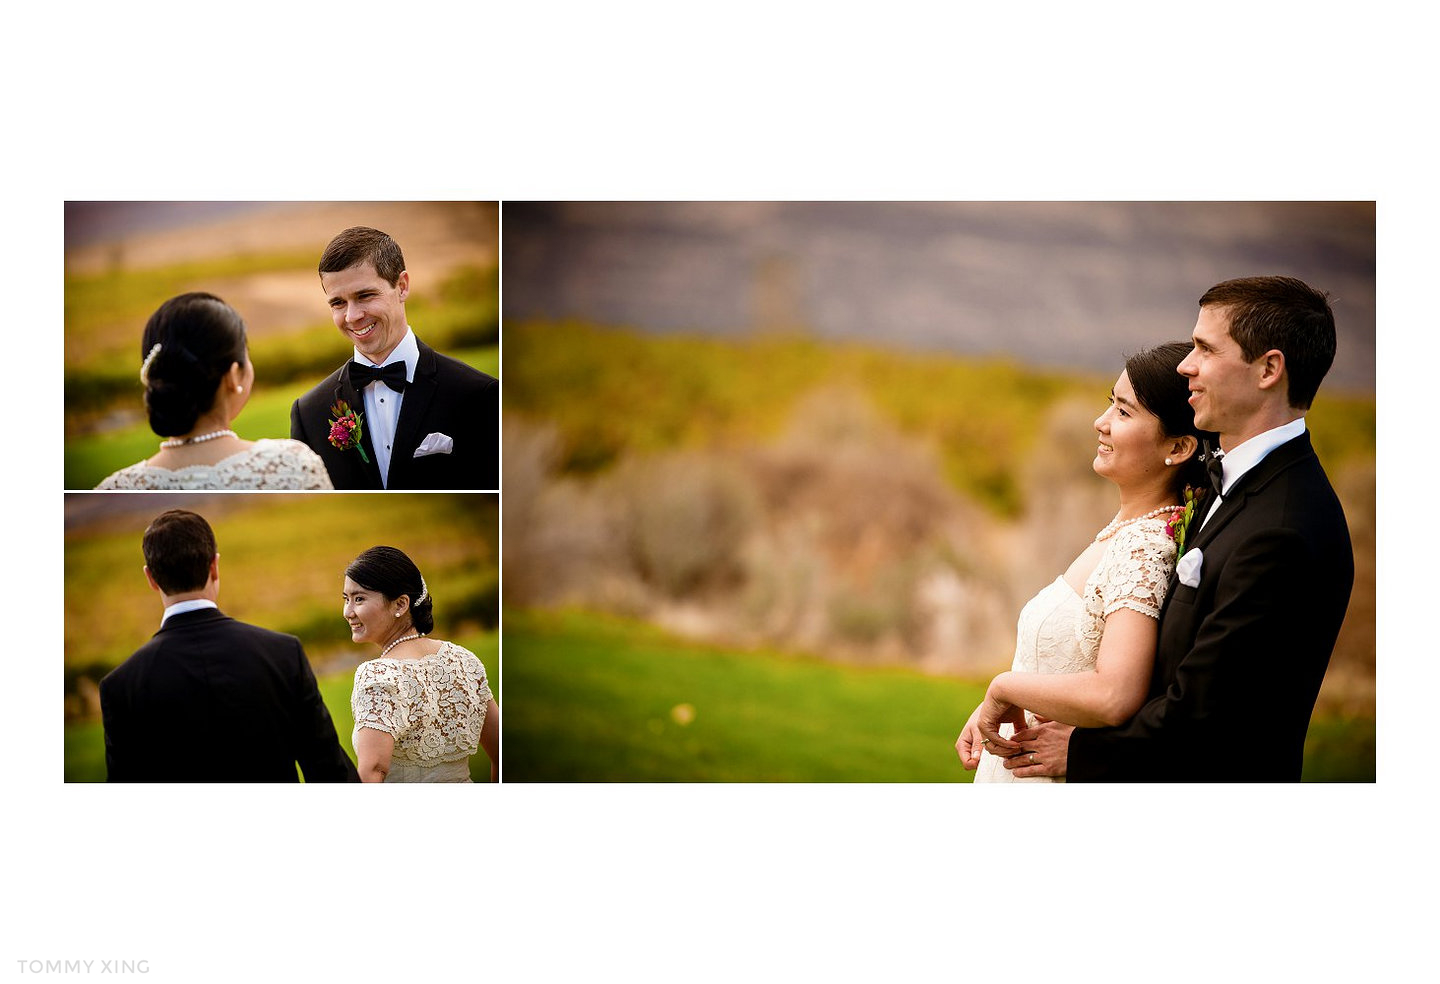 Tommy Xing Photography Seattle CAVE B ESTATE WINERY wedding 西雅图酒庄婚礼 35.jpg